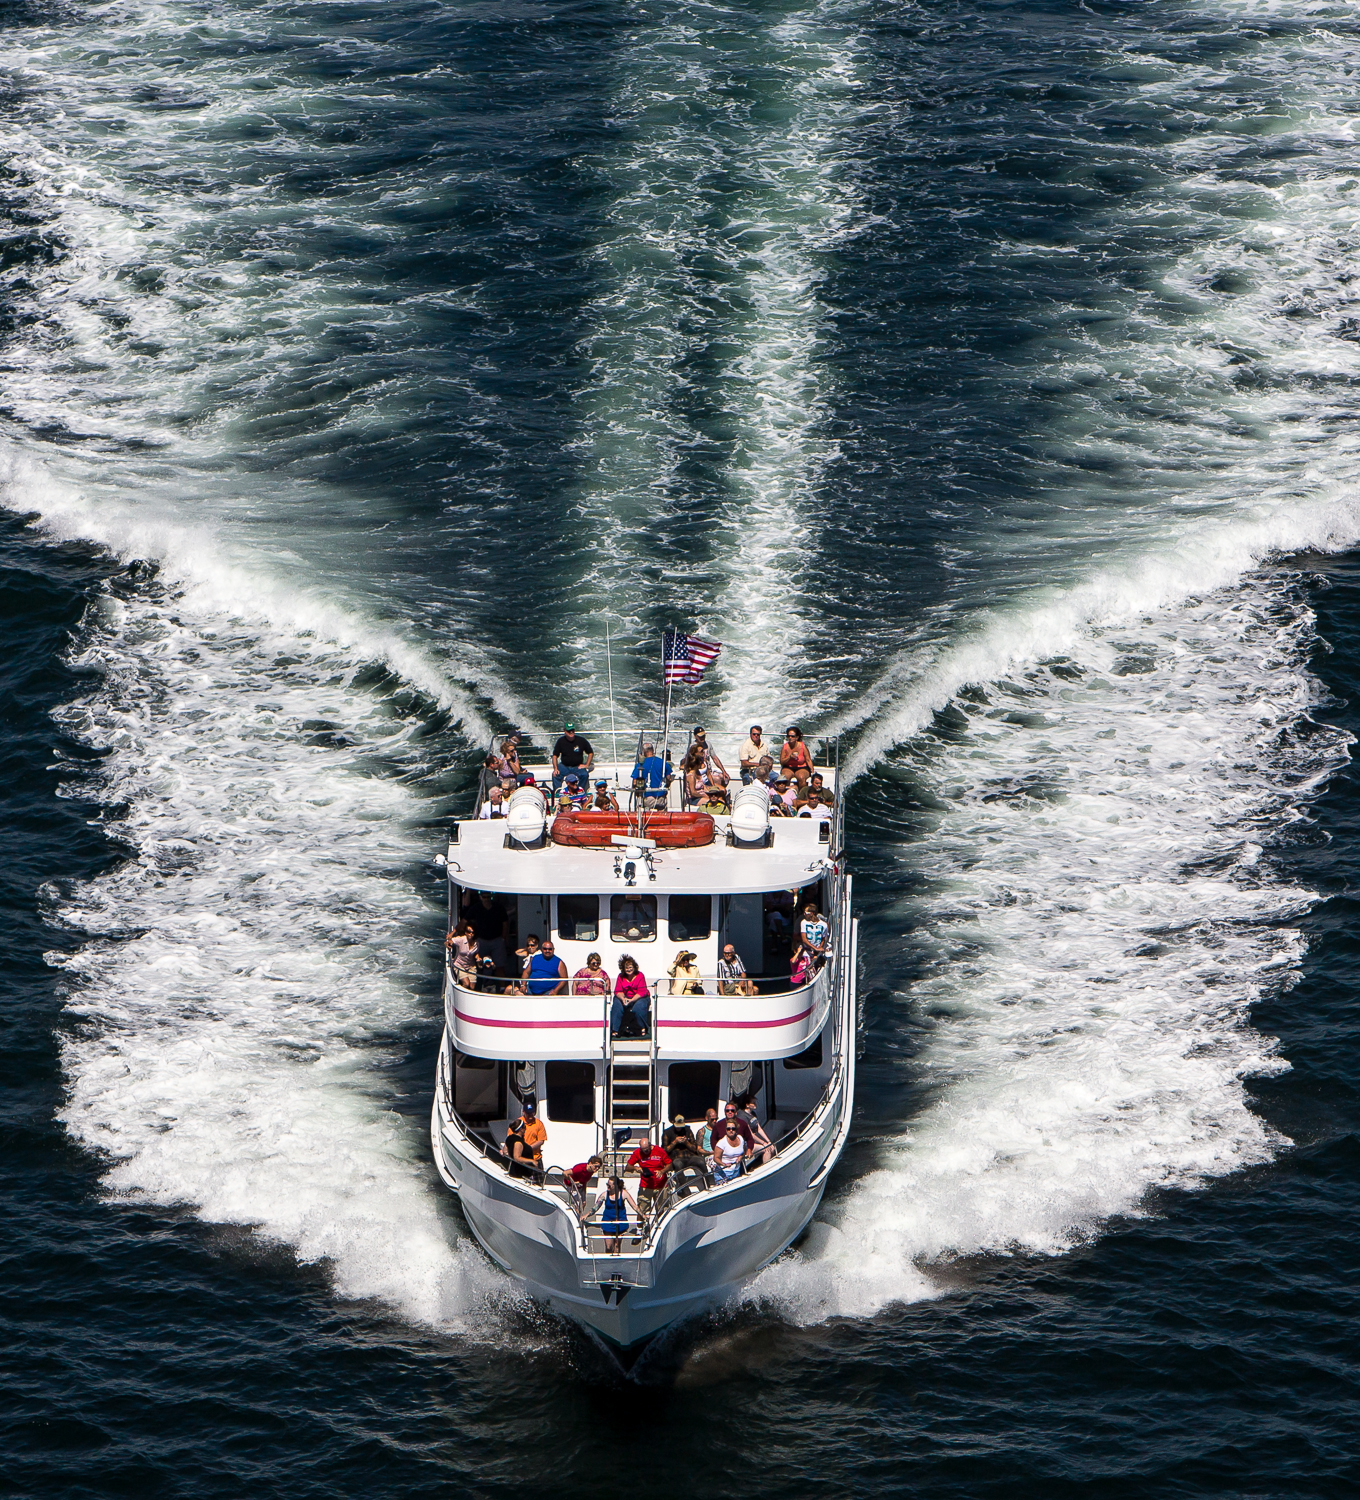 An aerial shot of a tour boat from Boothbay Harbor, Maine.